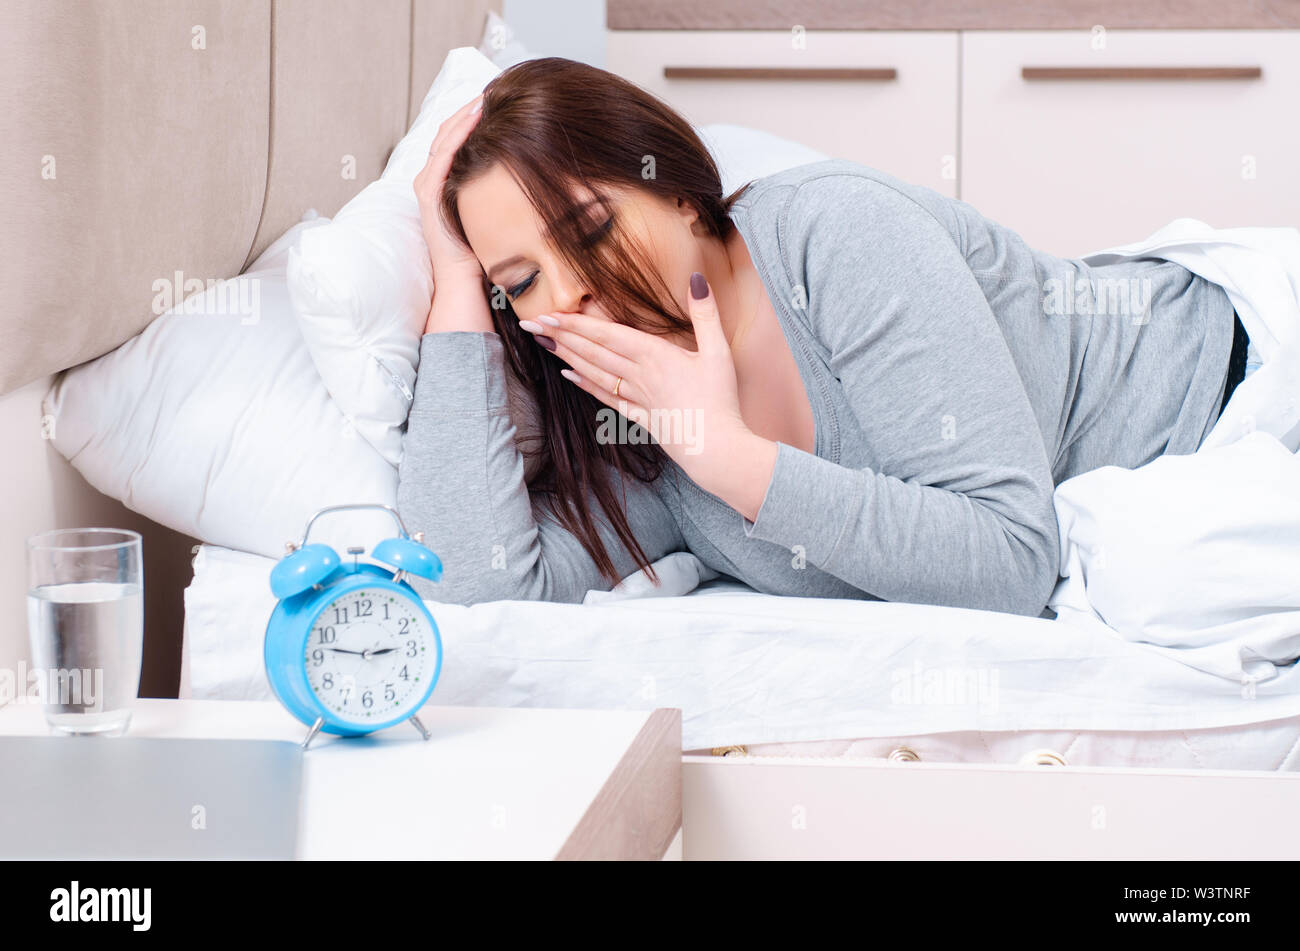 The young woman lying on the bed in time management concept - Stock Image